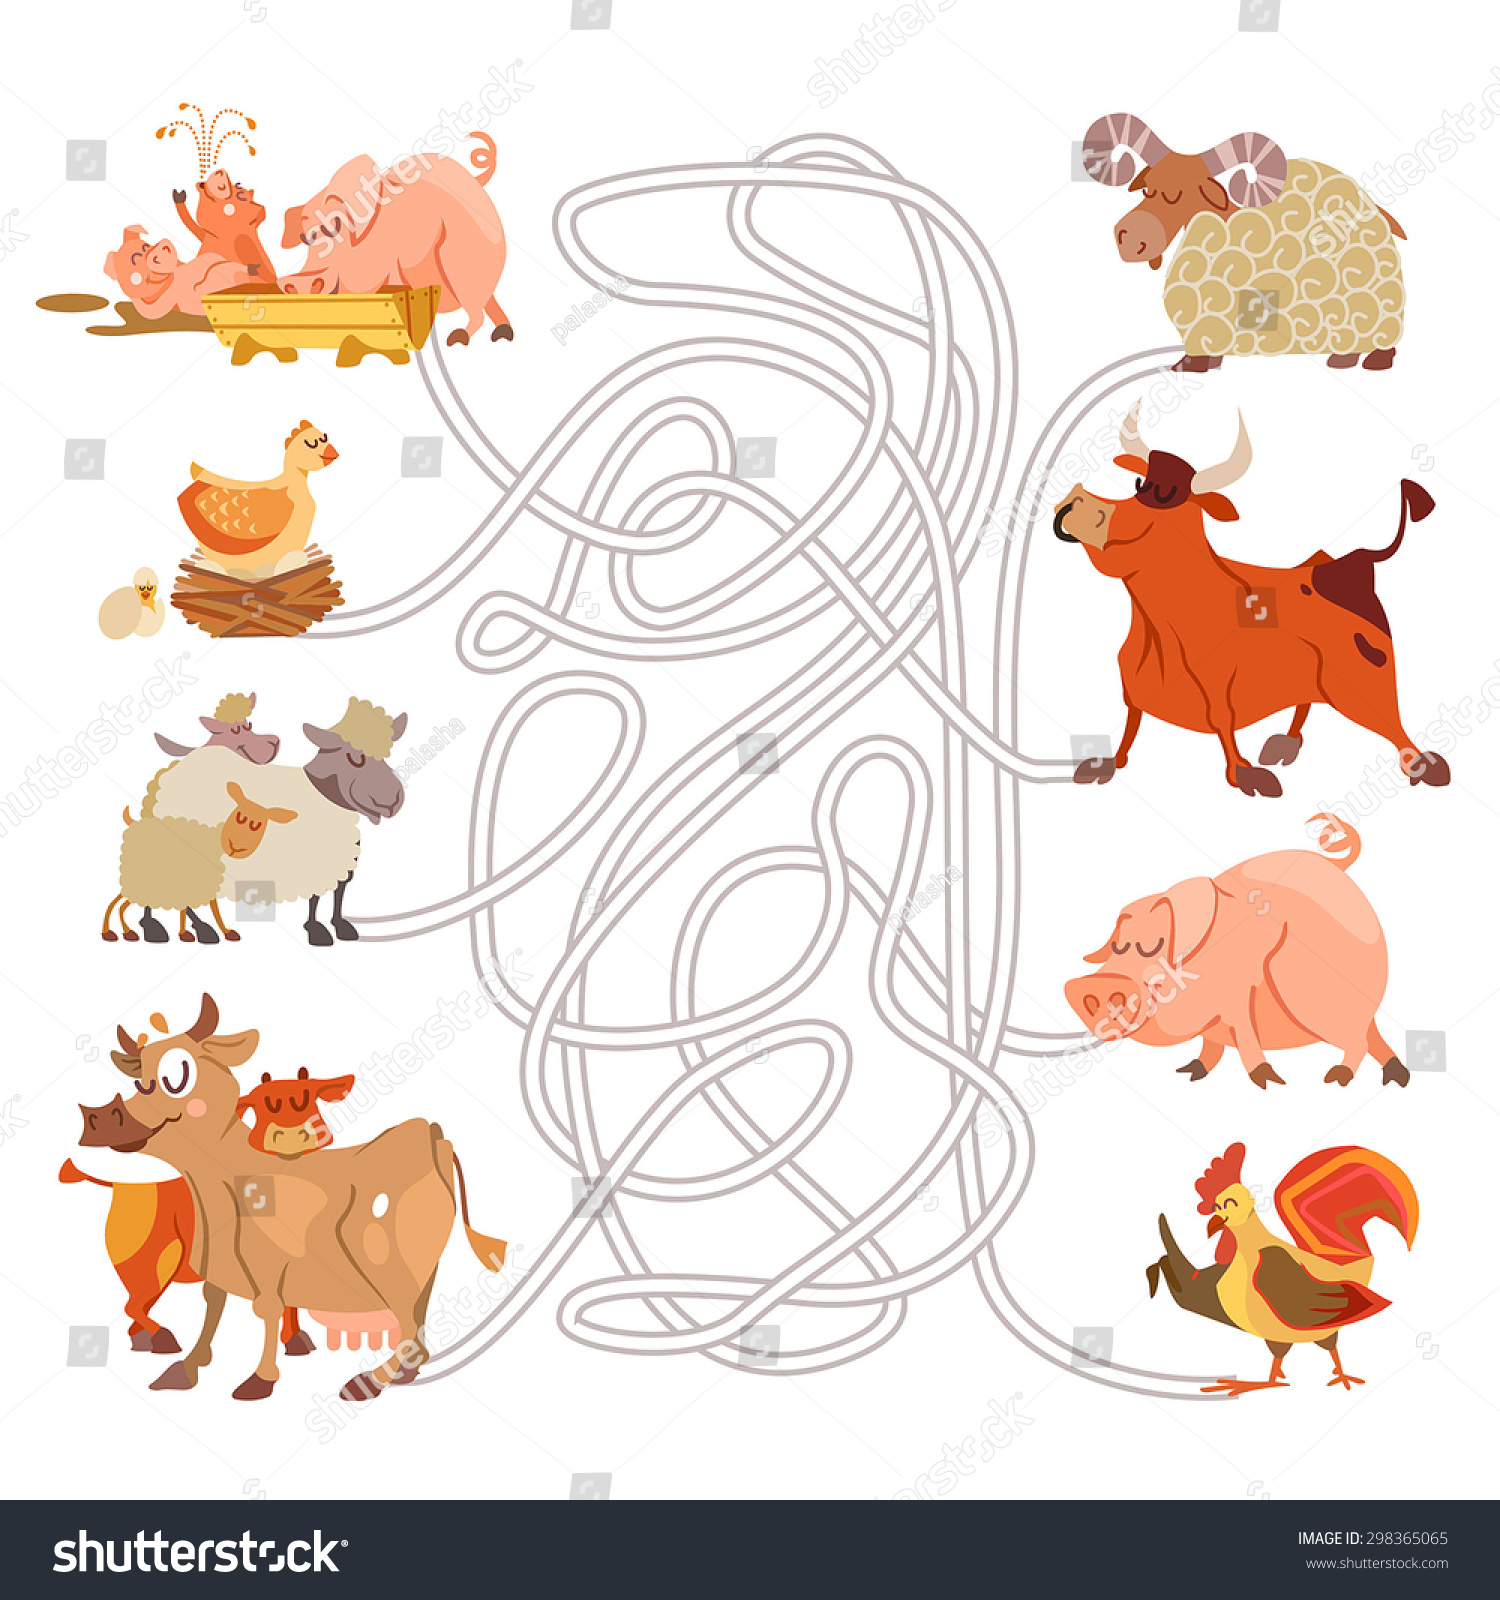 Children Game With Cartoon Farm Animals Help The Families